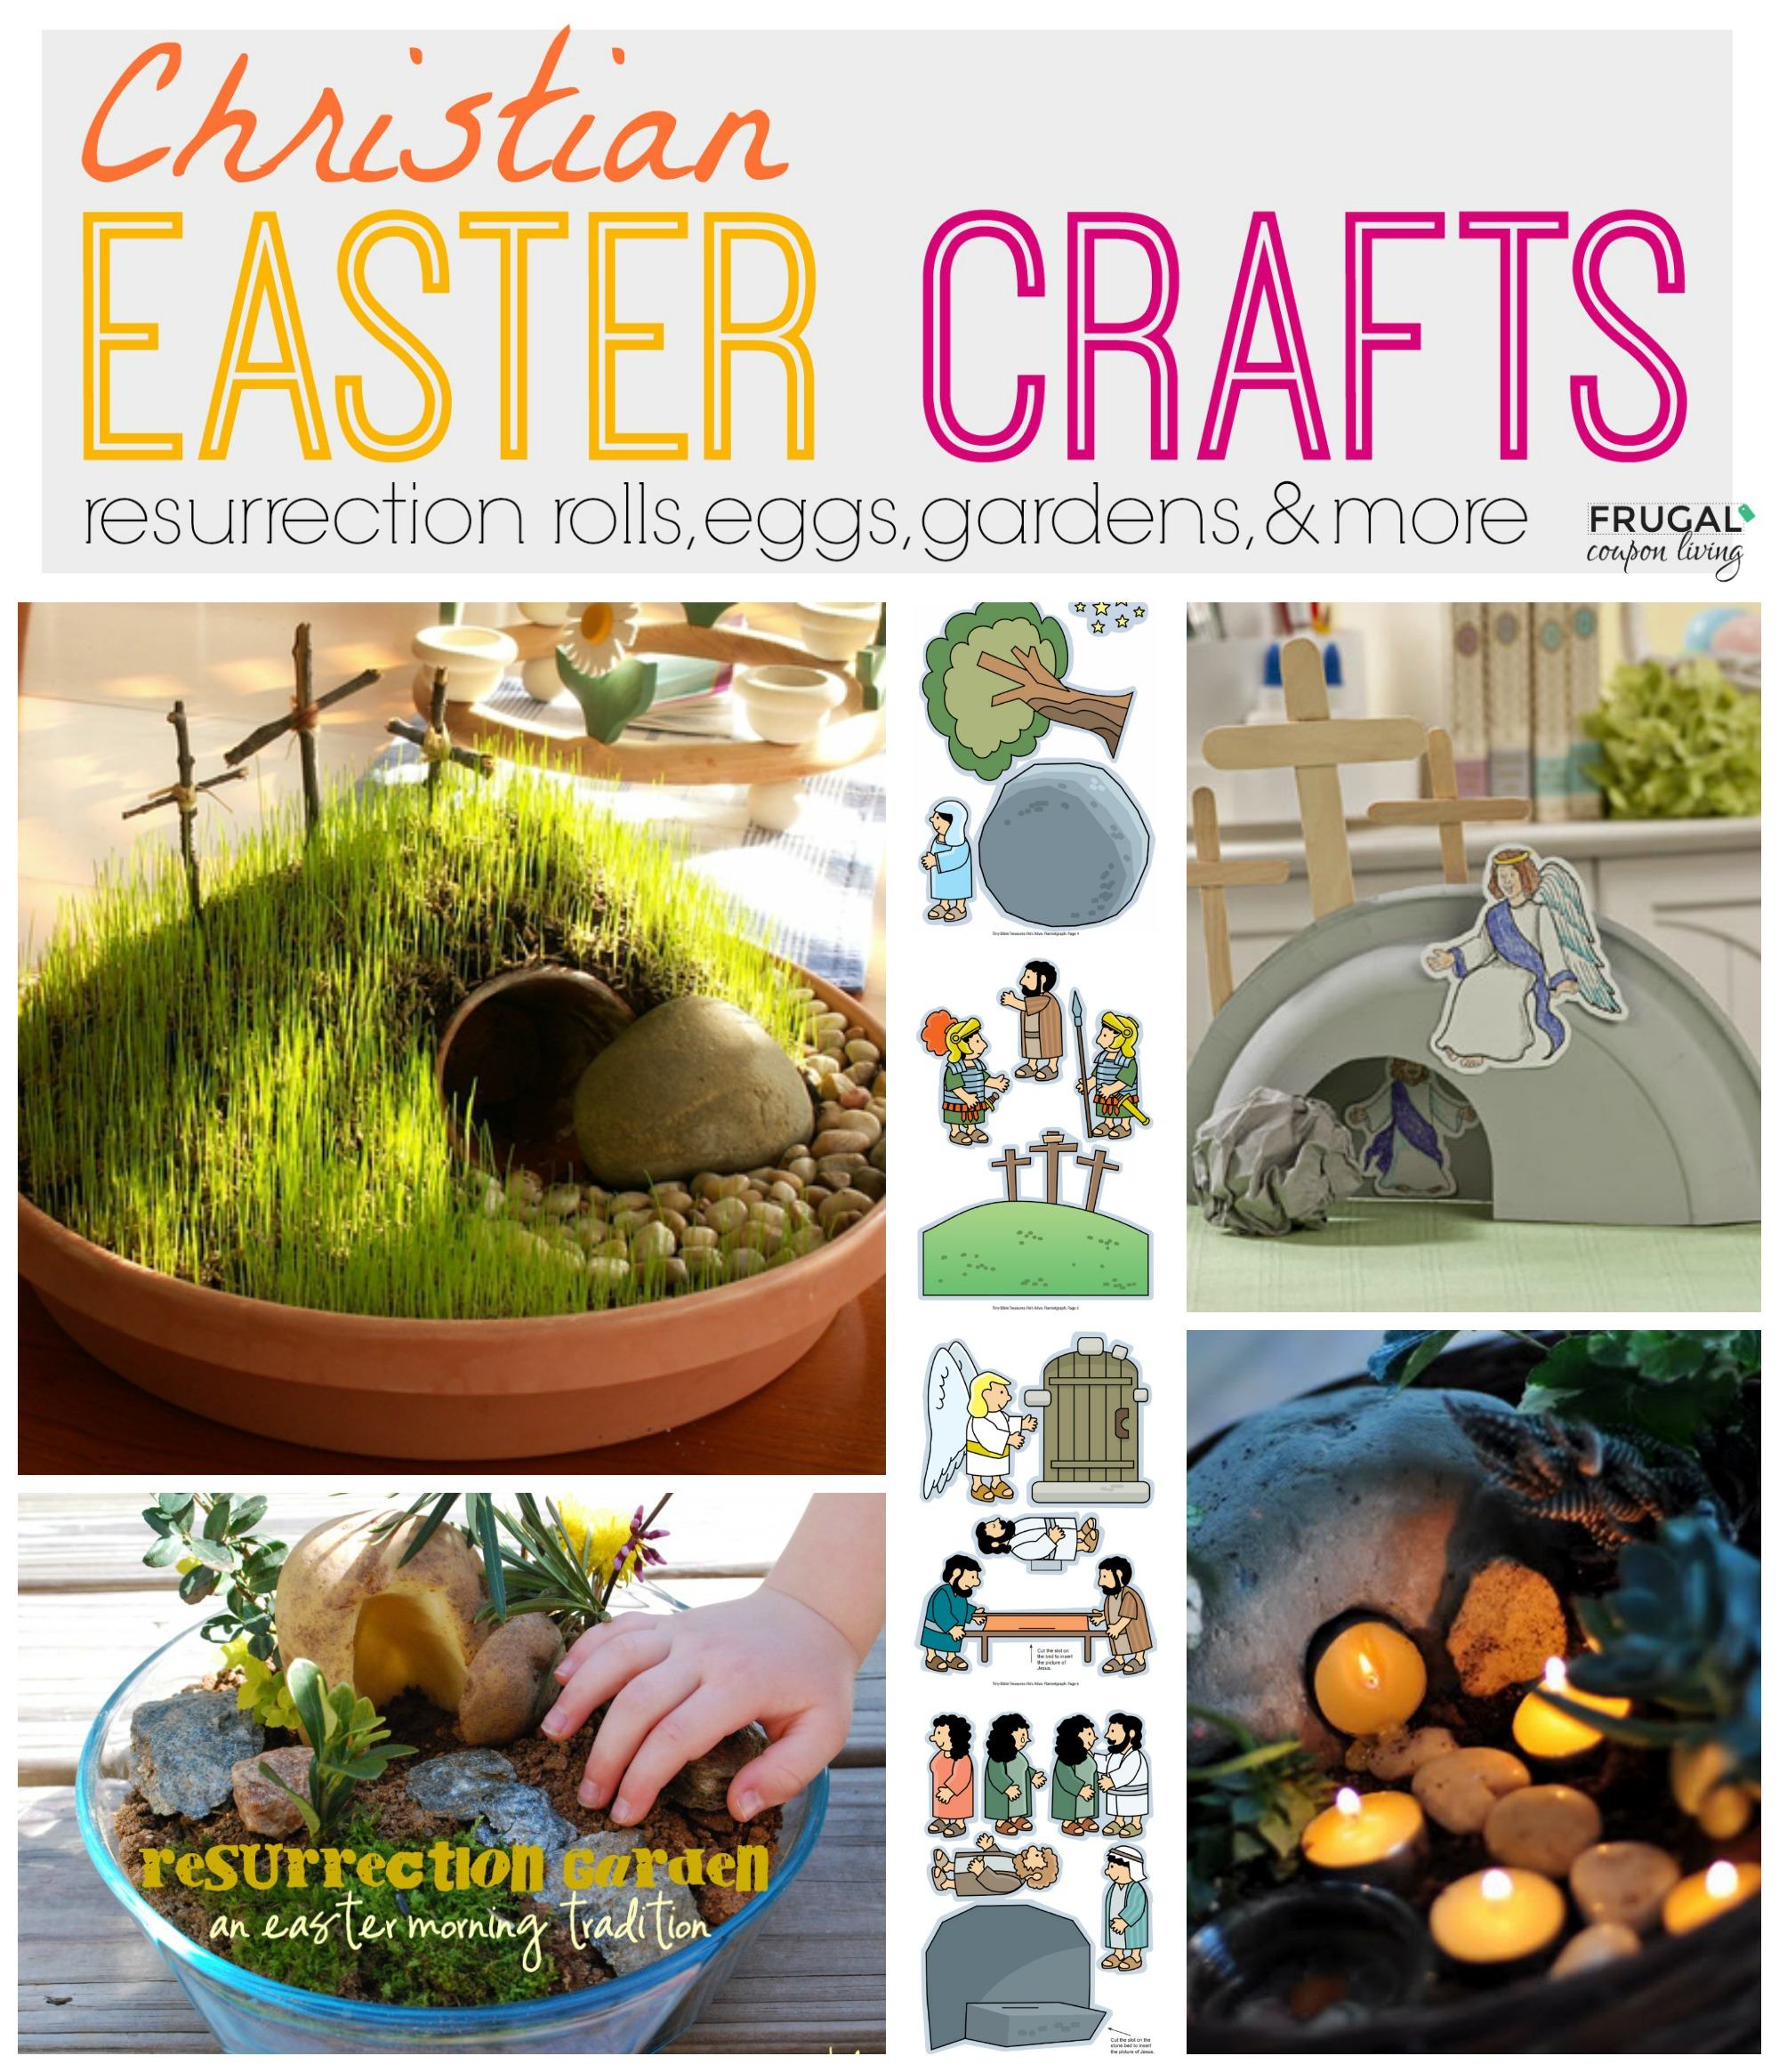 Christian-Easter-Crafts-Resurrection-Gardens